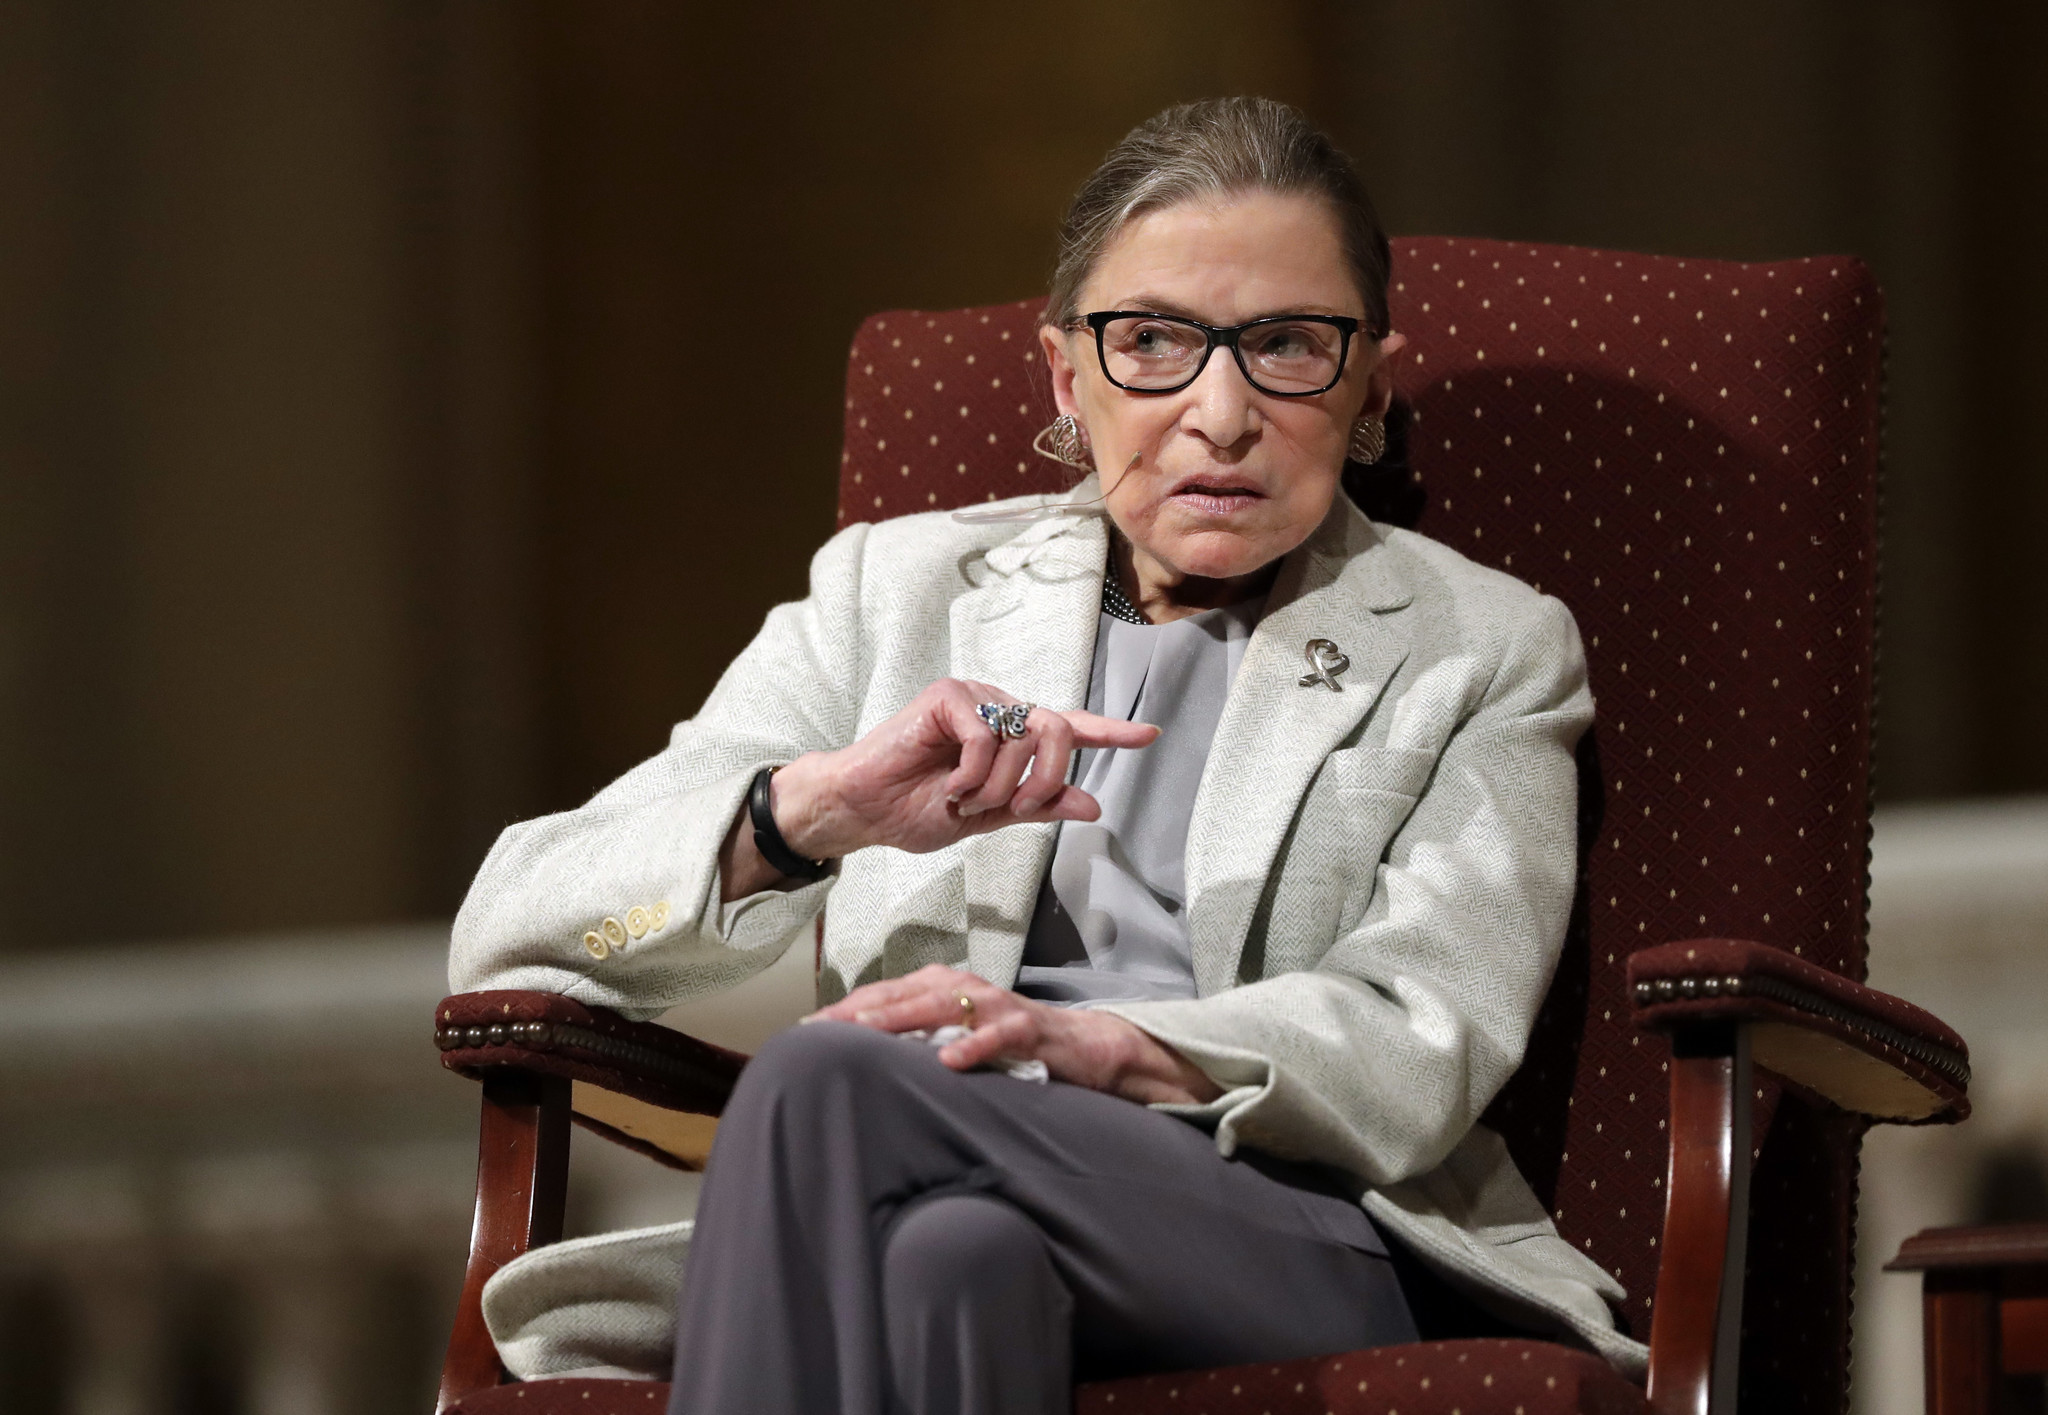 Ruth Bader Ginsburg improving after fall but misses court session